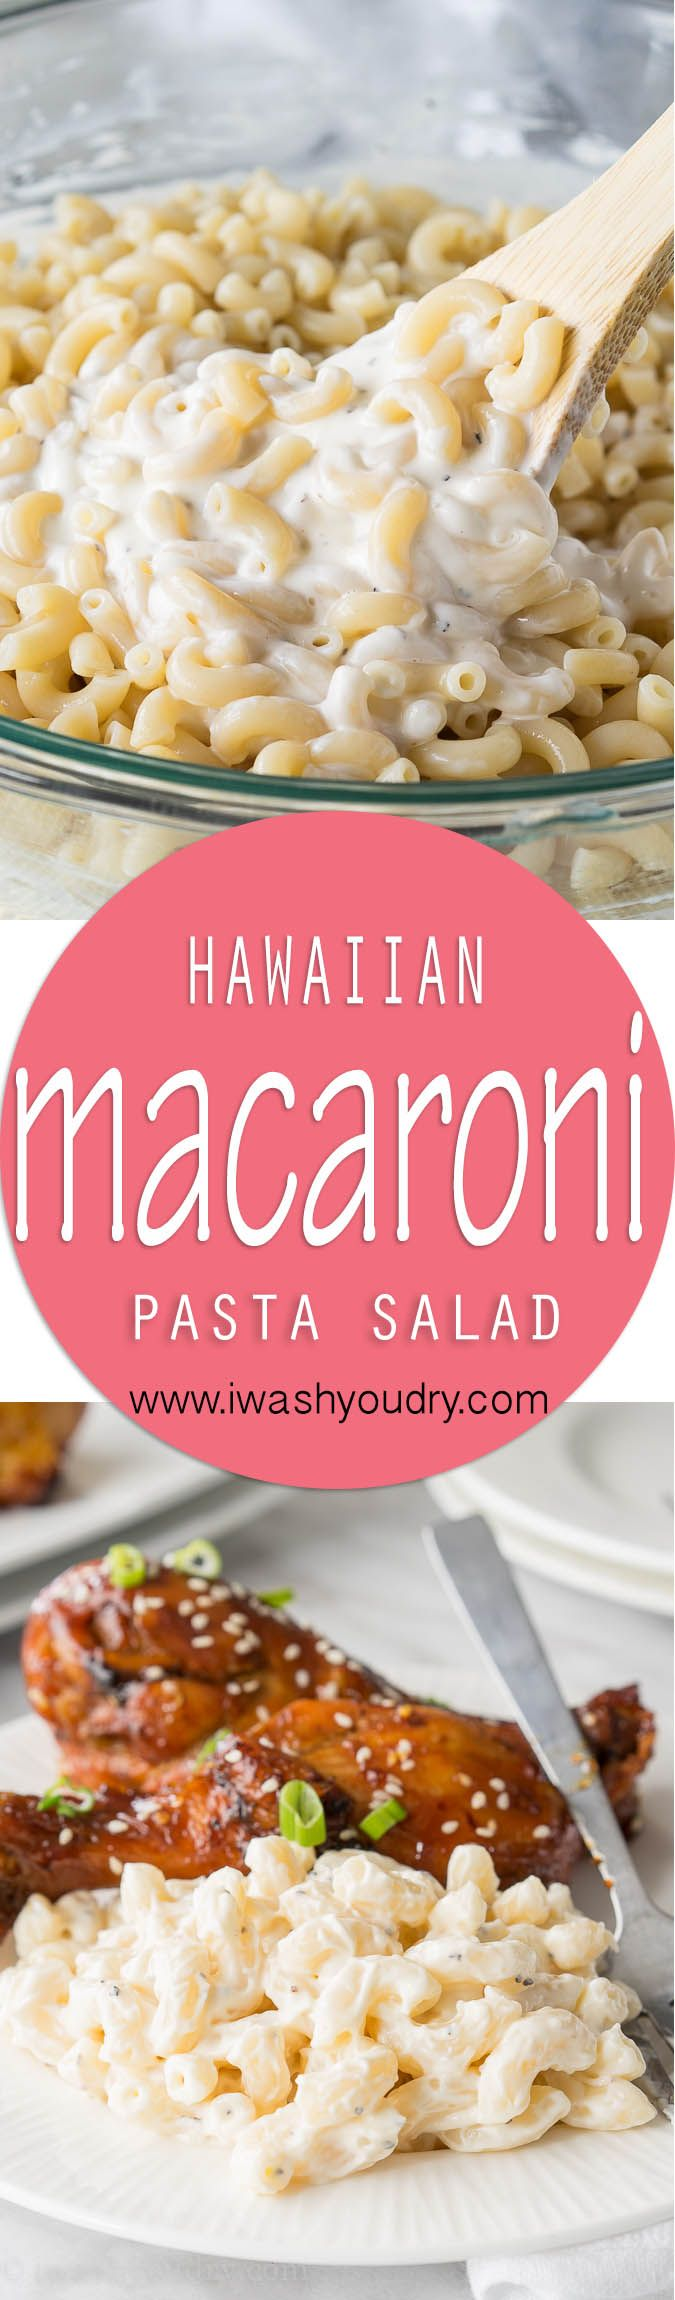 Hawaiian Macaroni Salad! I love this creamy pasta salad with bbq and fried chicken!